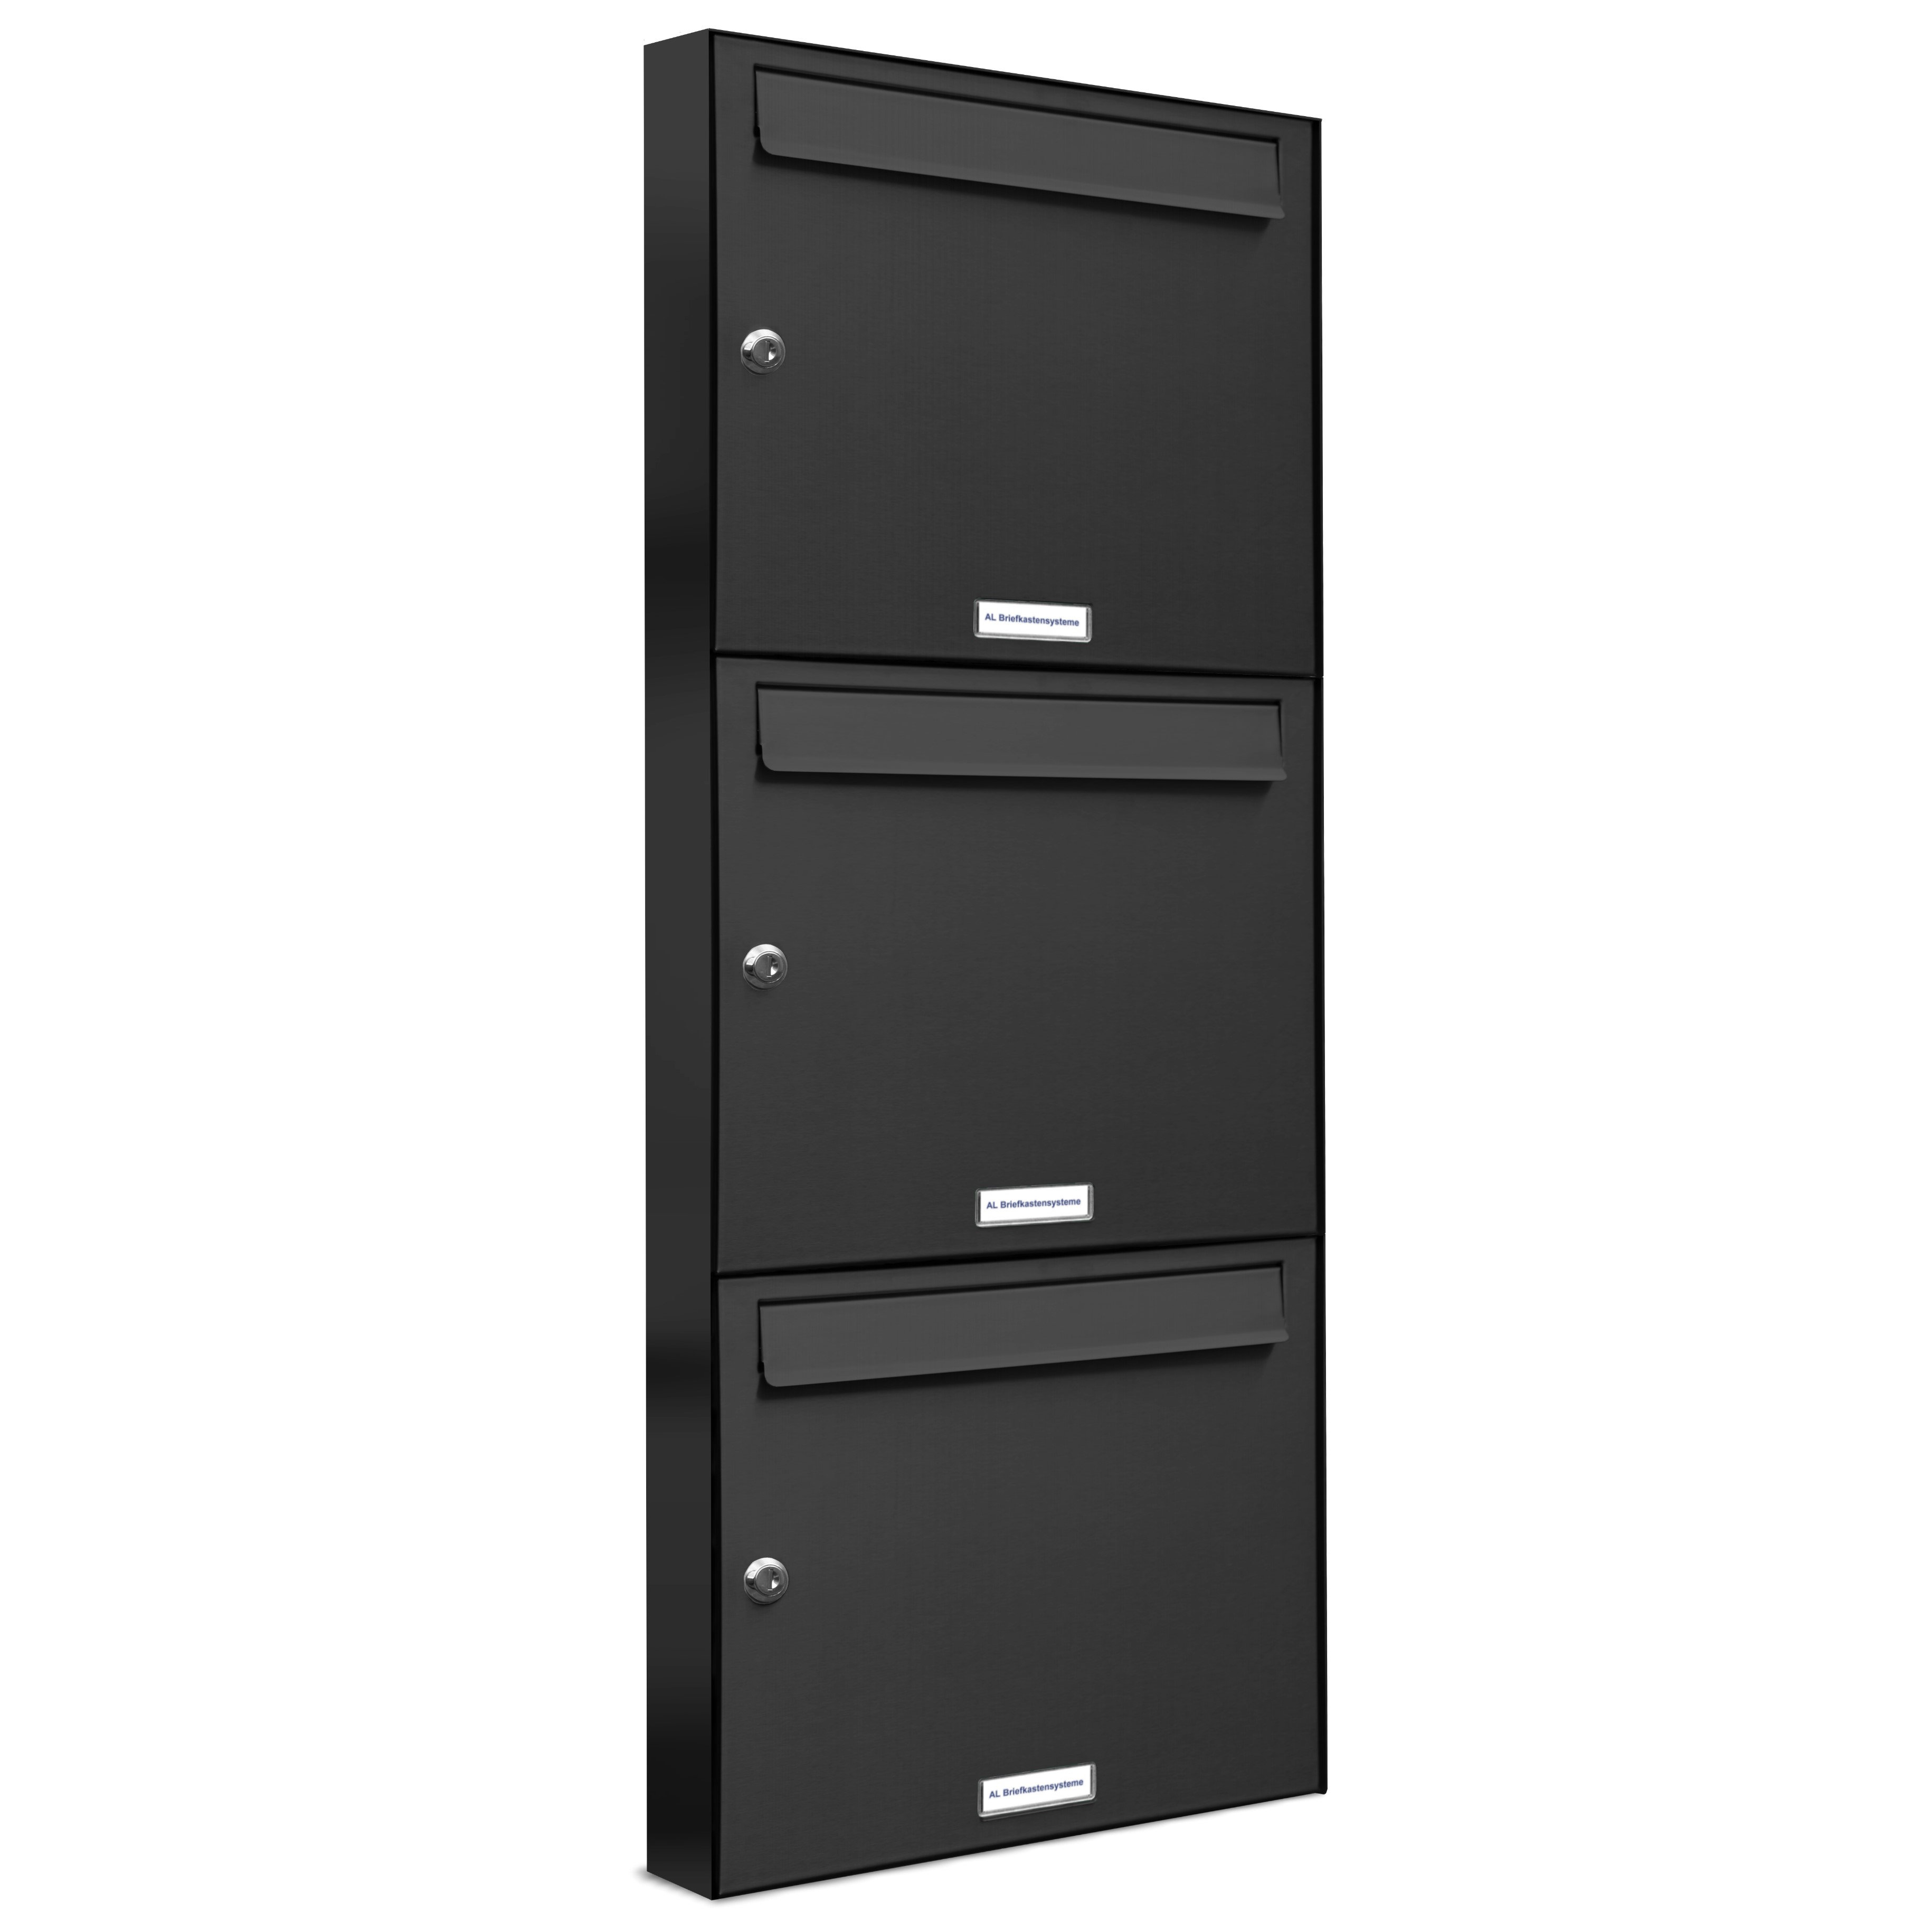 3er 1x3 briefkasten anlage aufputz wandmontage ral 7016 anthrazit ebay. Black Bedroom Furniture Sets. Home Design Ideas